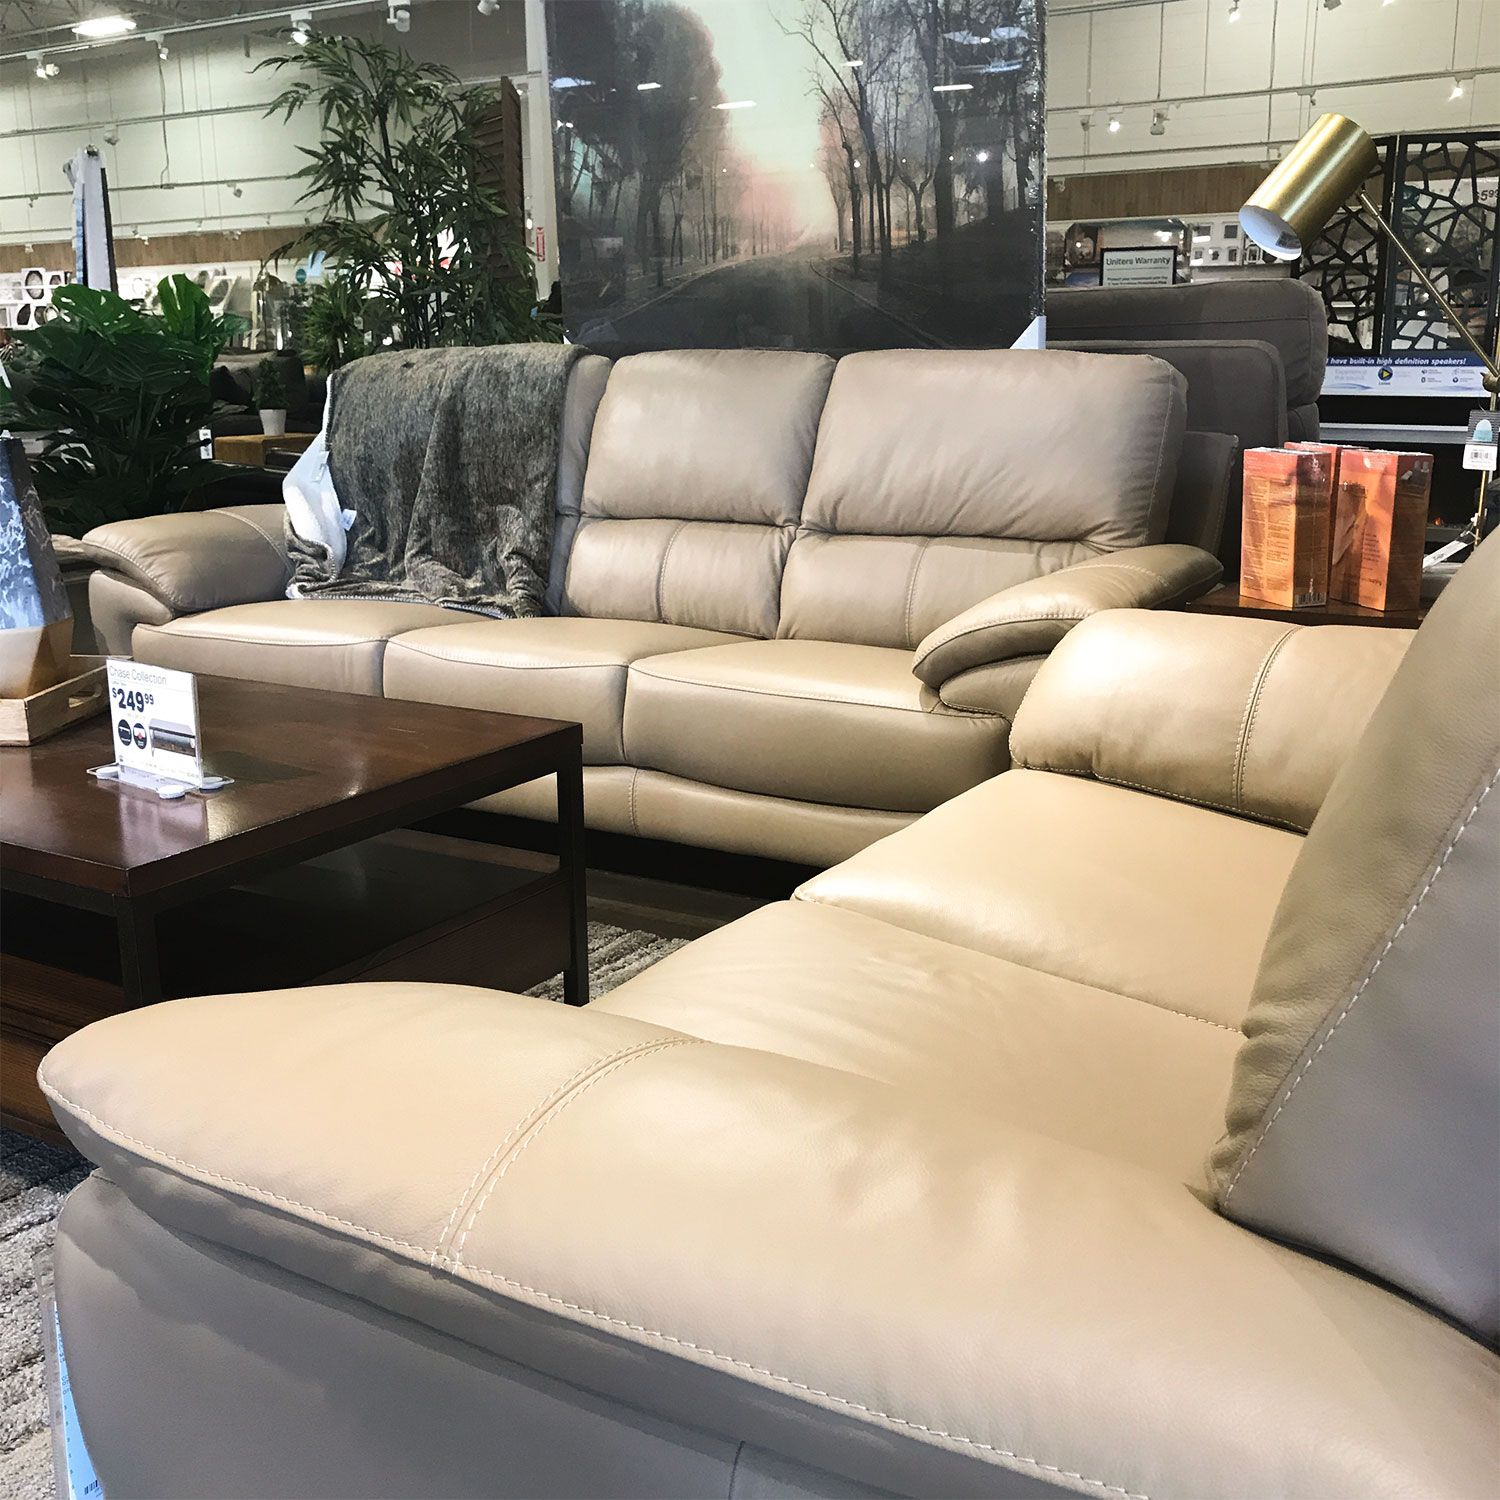 Wynwood Sofa Leather Sofa Comes In Two Colors Modern Design Modern Home Furniture Home Furniture Home Decor